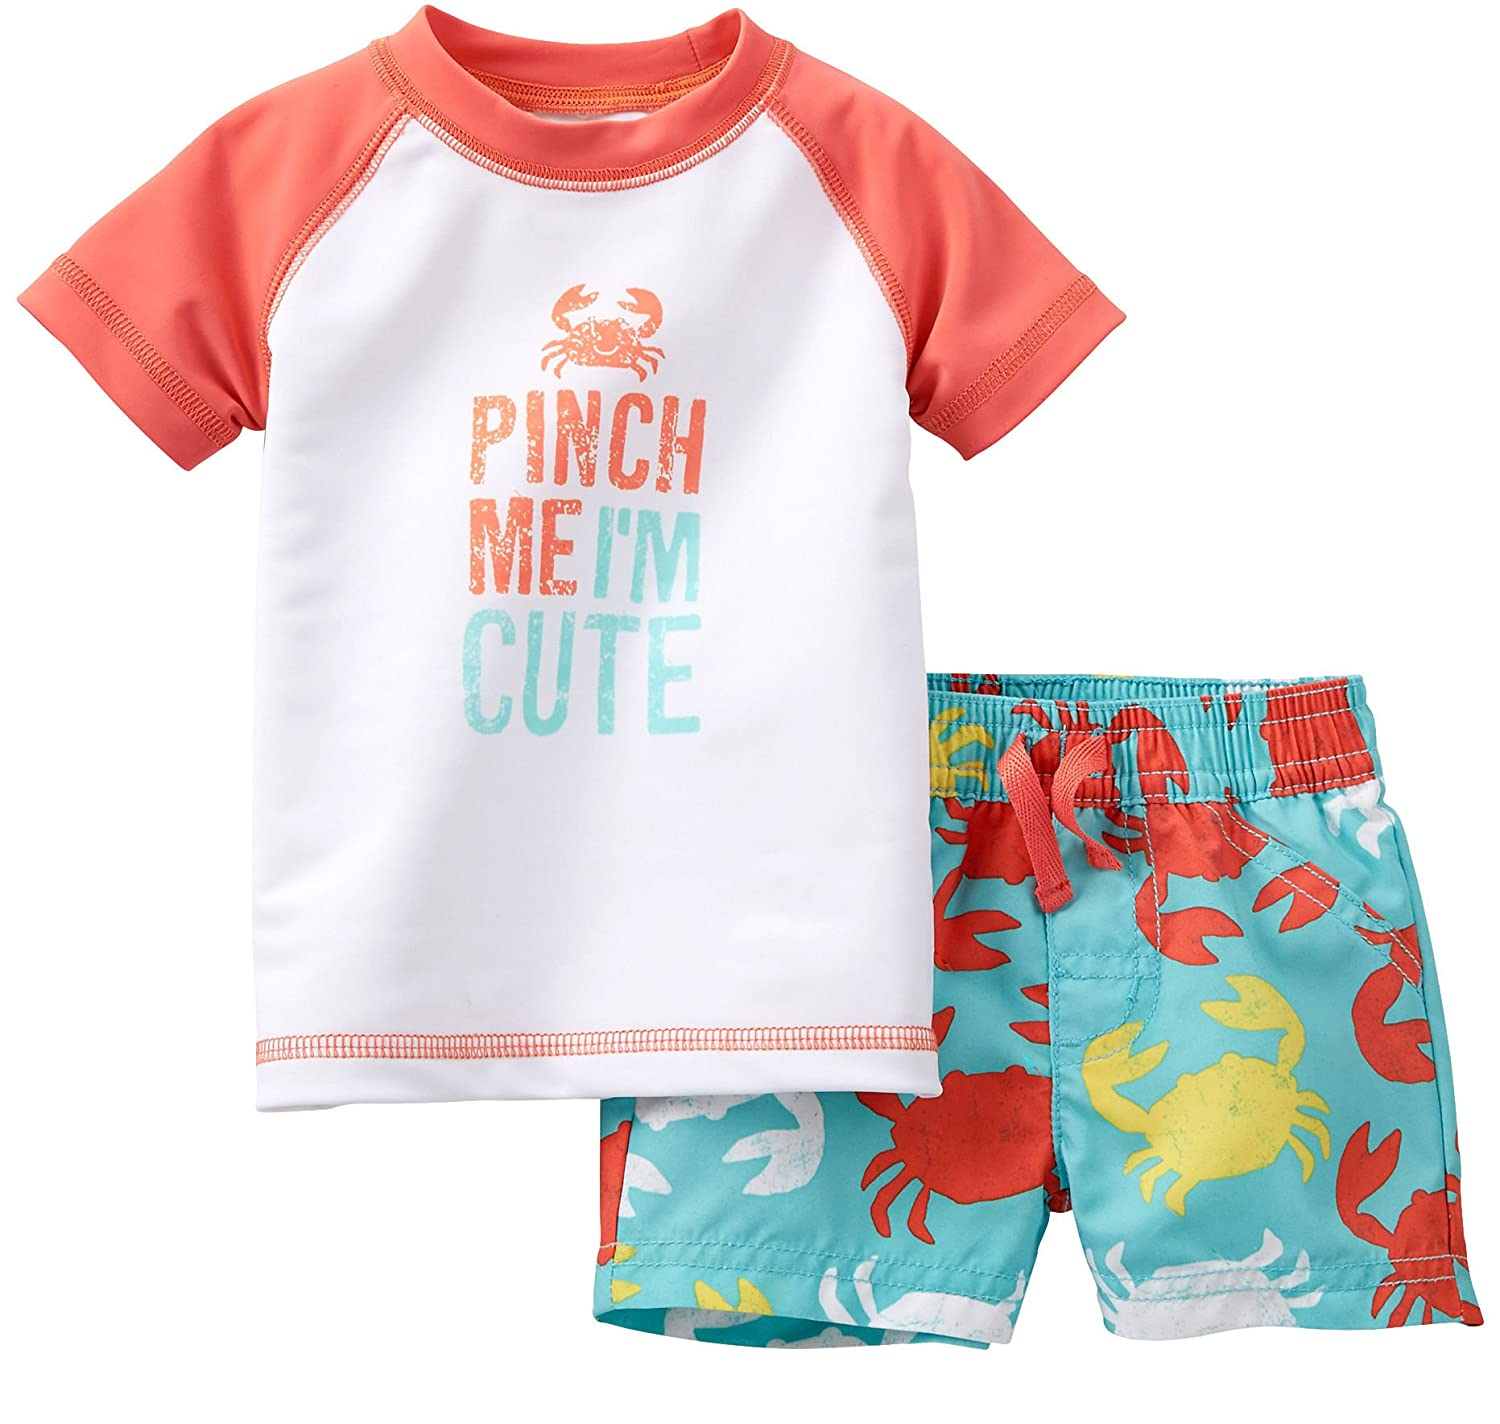 c207ba0561 Amazon.com: Carter's Baby Boys Little Surfer 2 Piece Rash Guard Top and  Swim trunk Set: Clothing